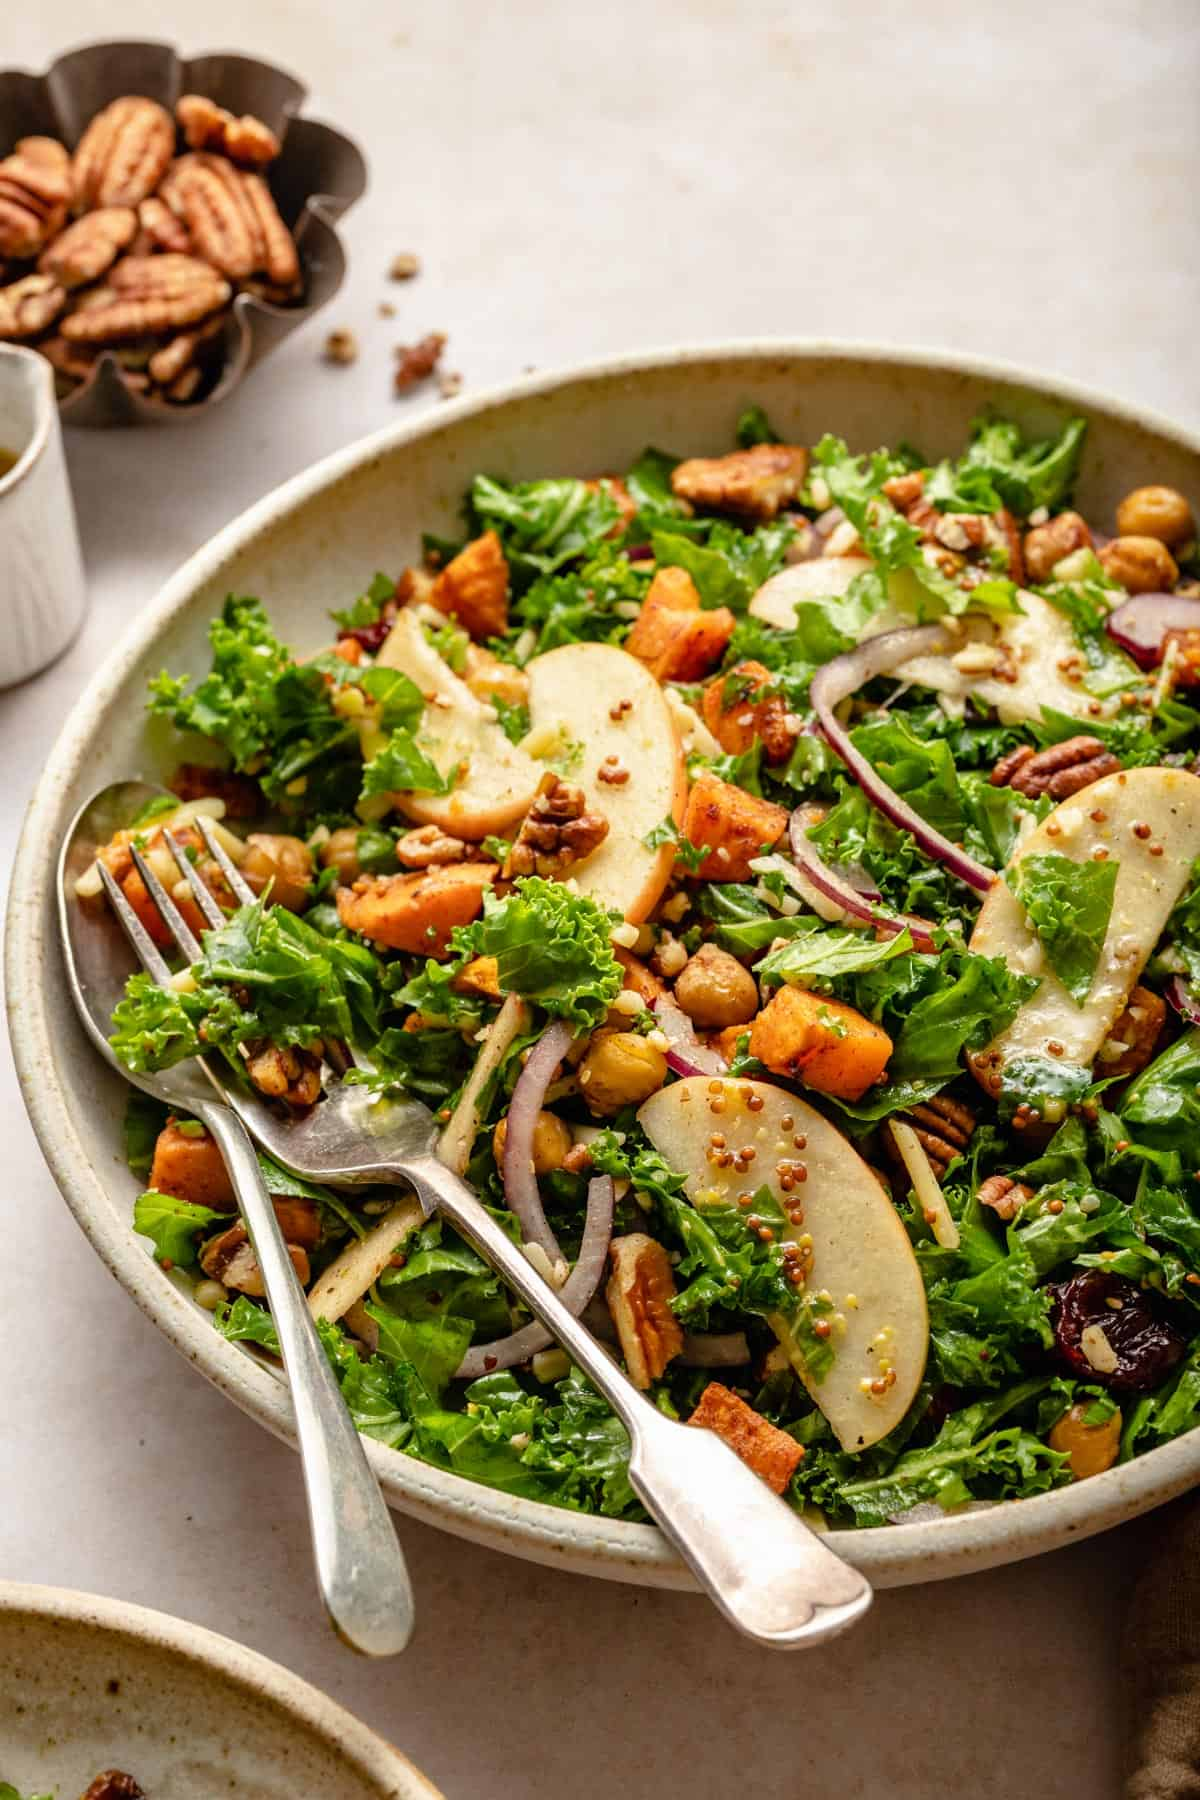 Kale salad with apples, chickpeas and   red onion with a spoon and fork in a bowl.